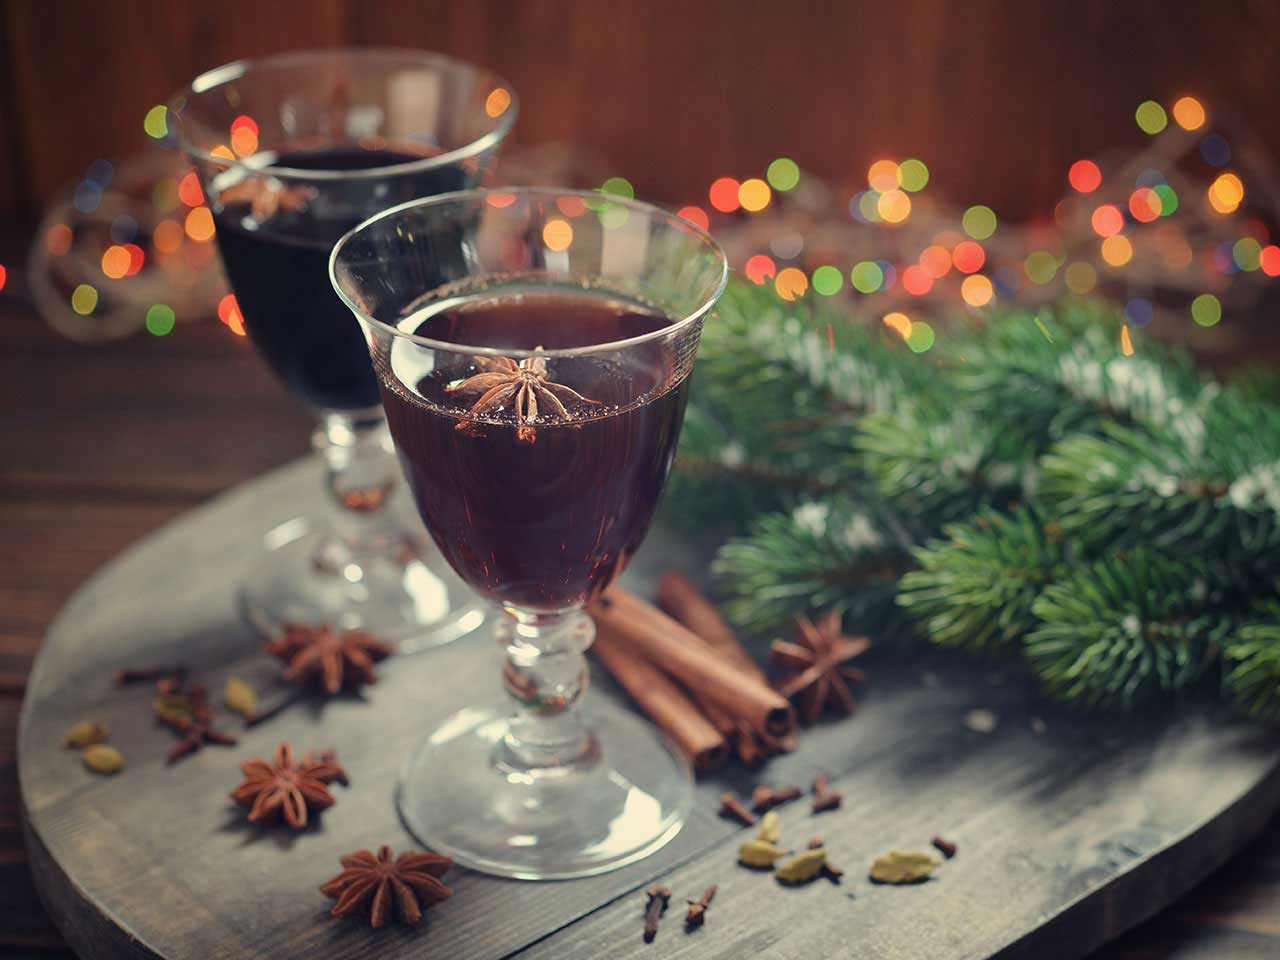 Mulled wine at Christmas time